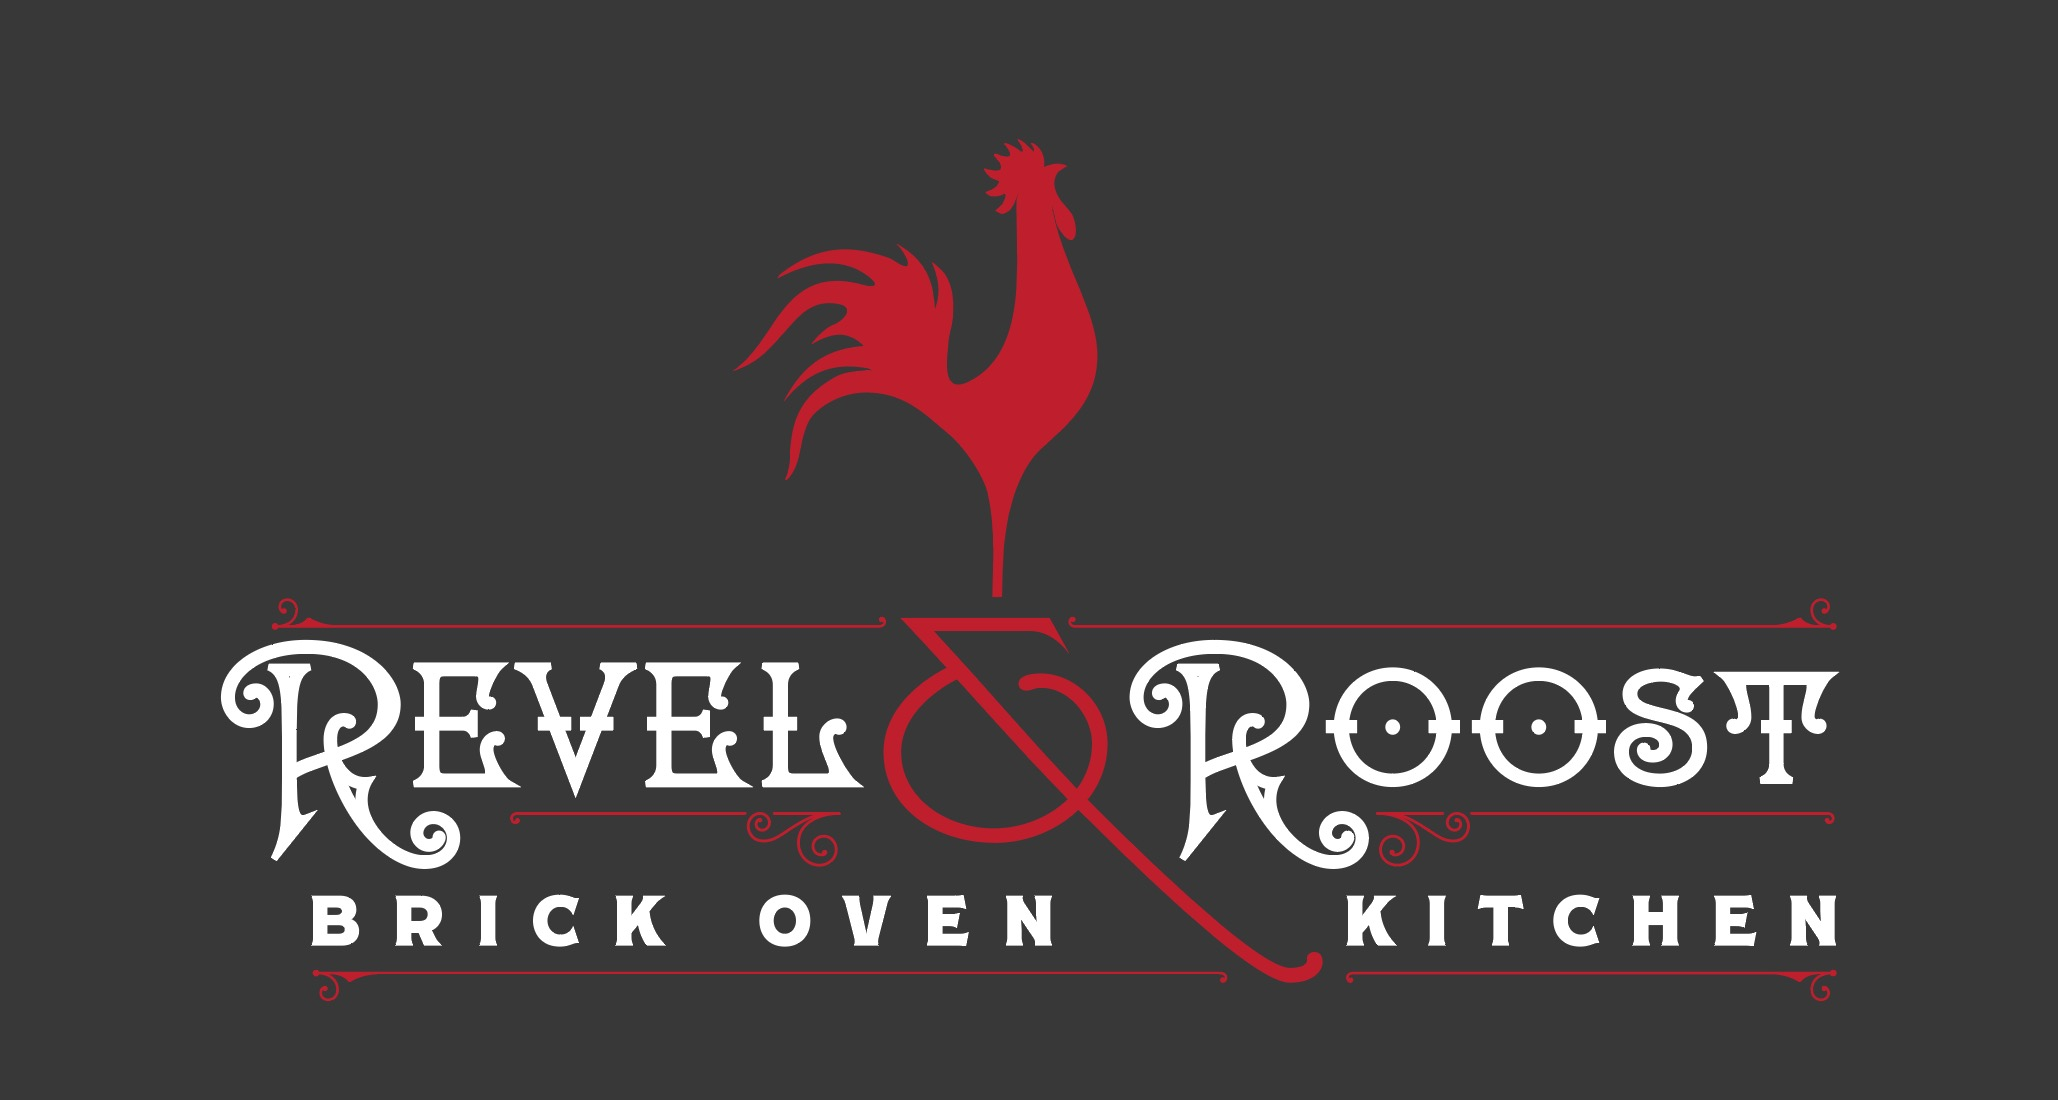 Revel and Roost Brick Oven Kitchen